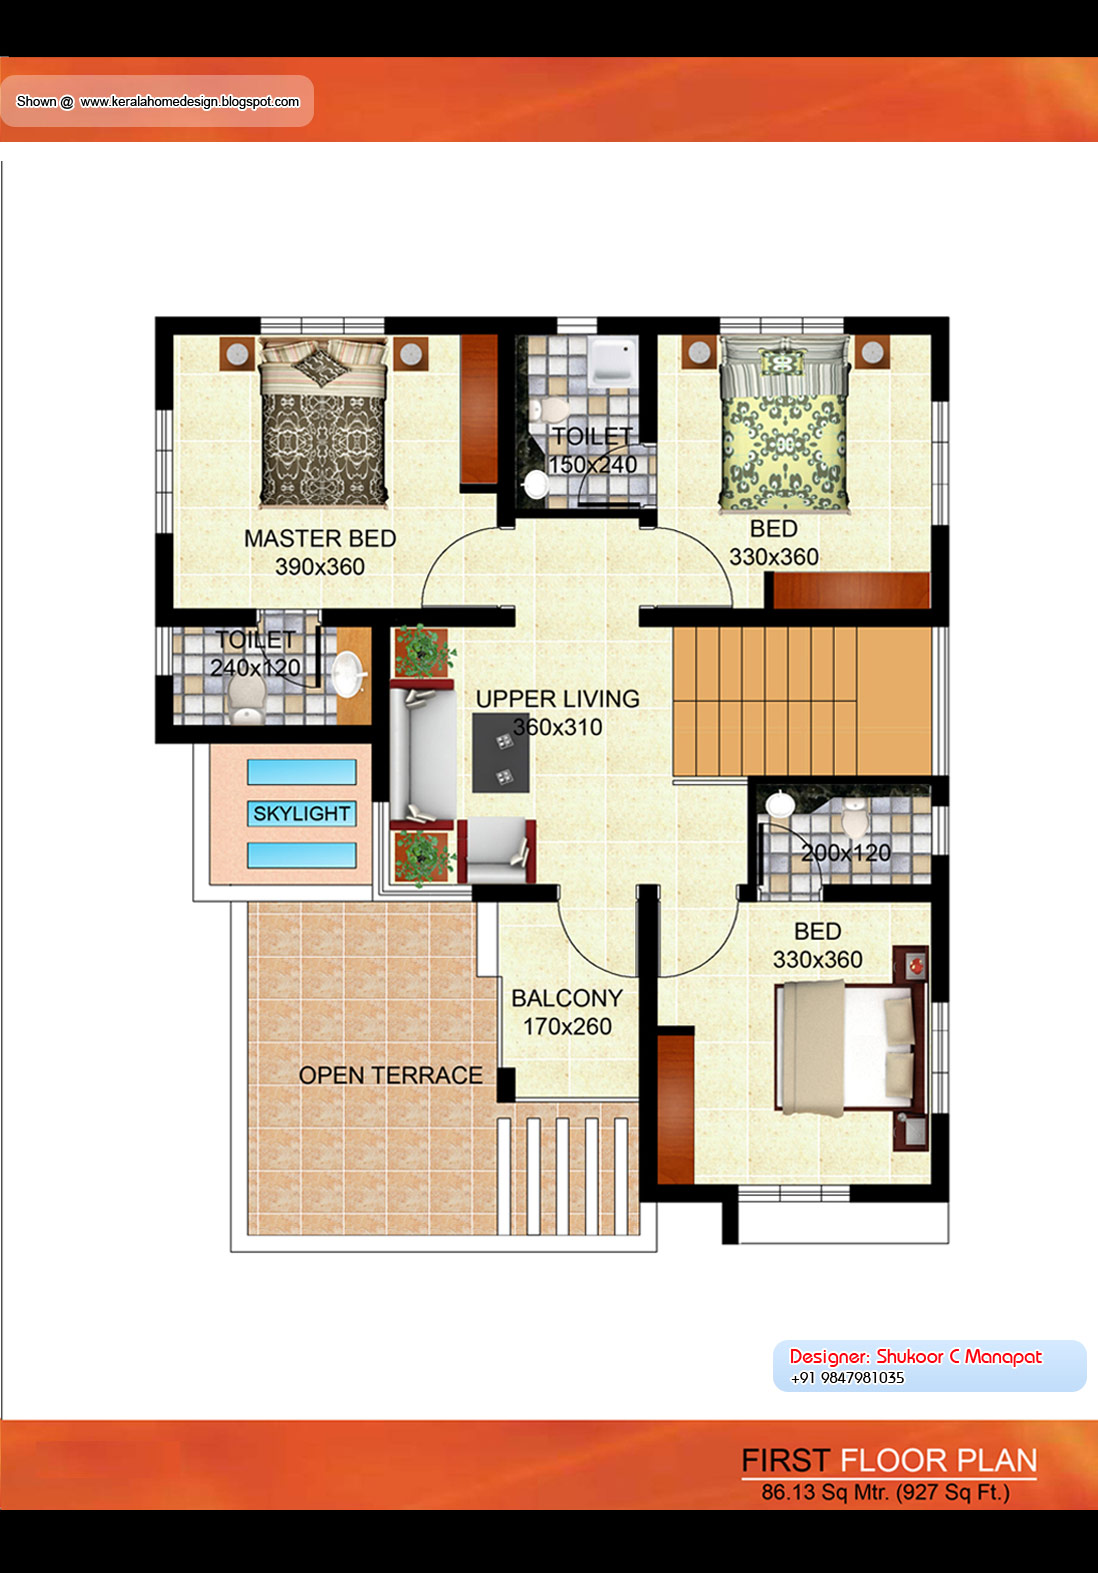 Kerala villa plan 2035 sq ft architecture house plans for Villa plans in kerala